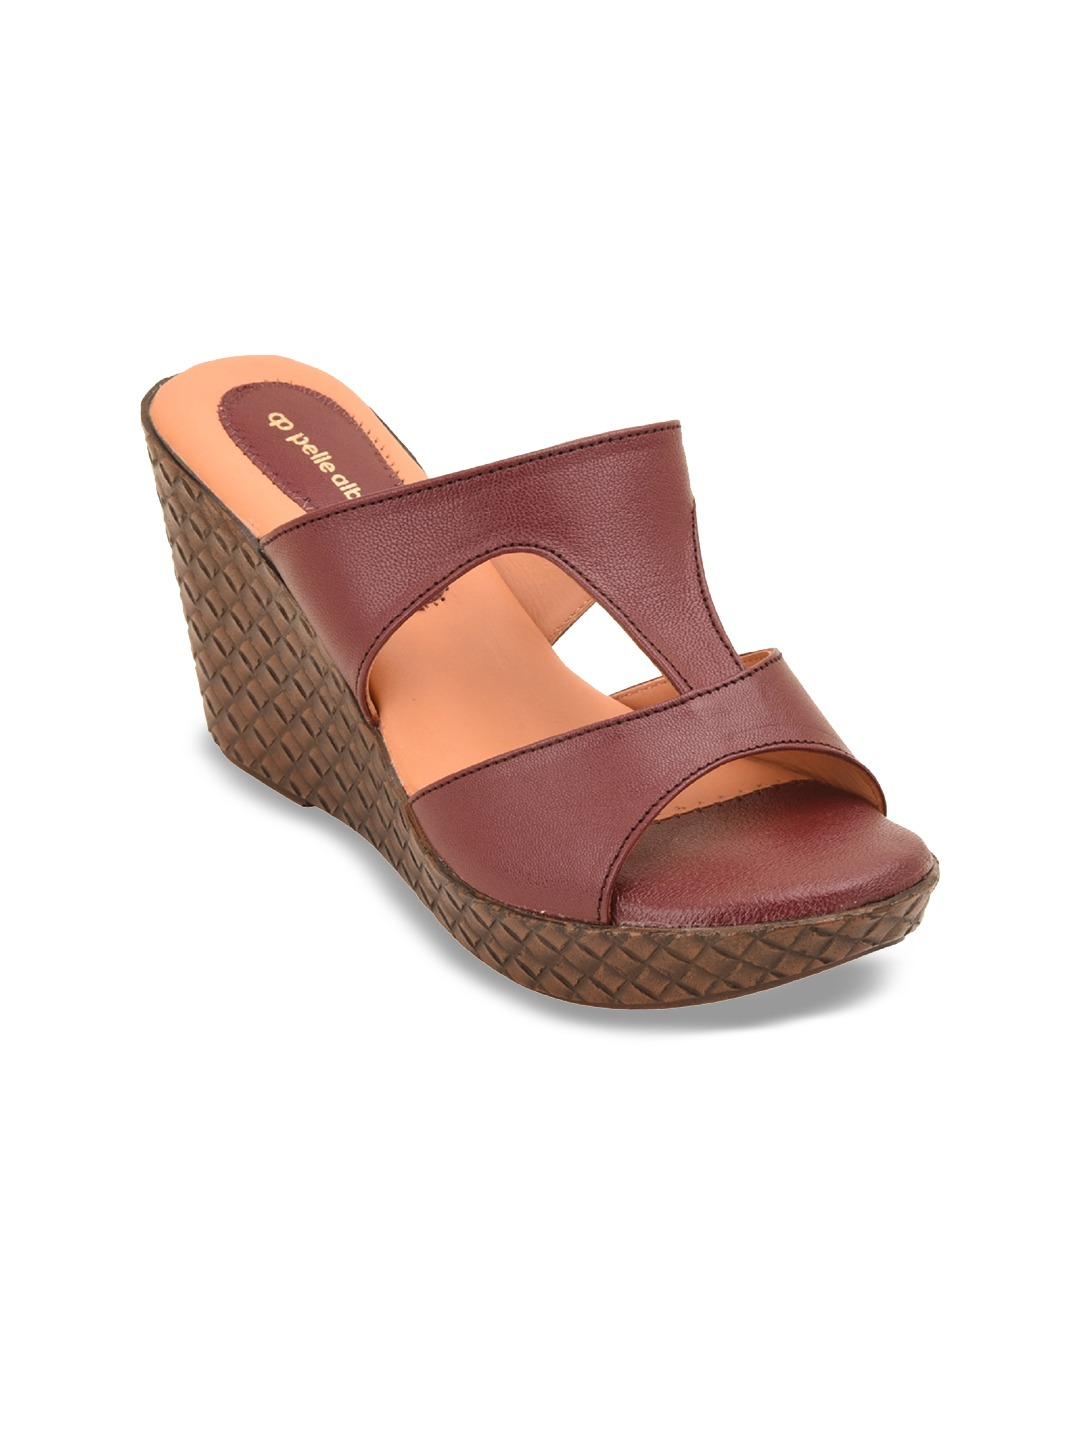 Maroon Solid Leather Wedges